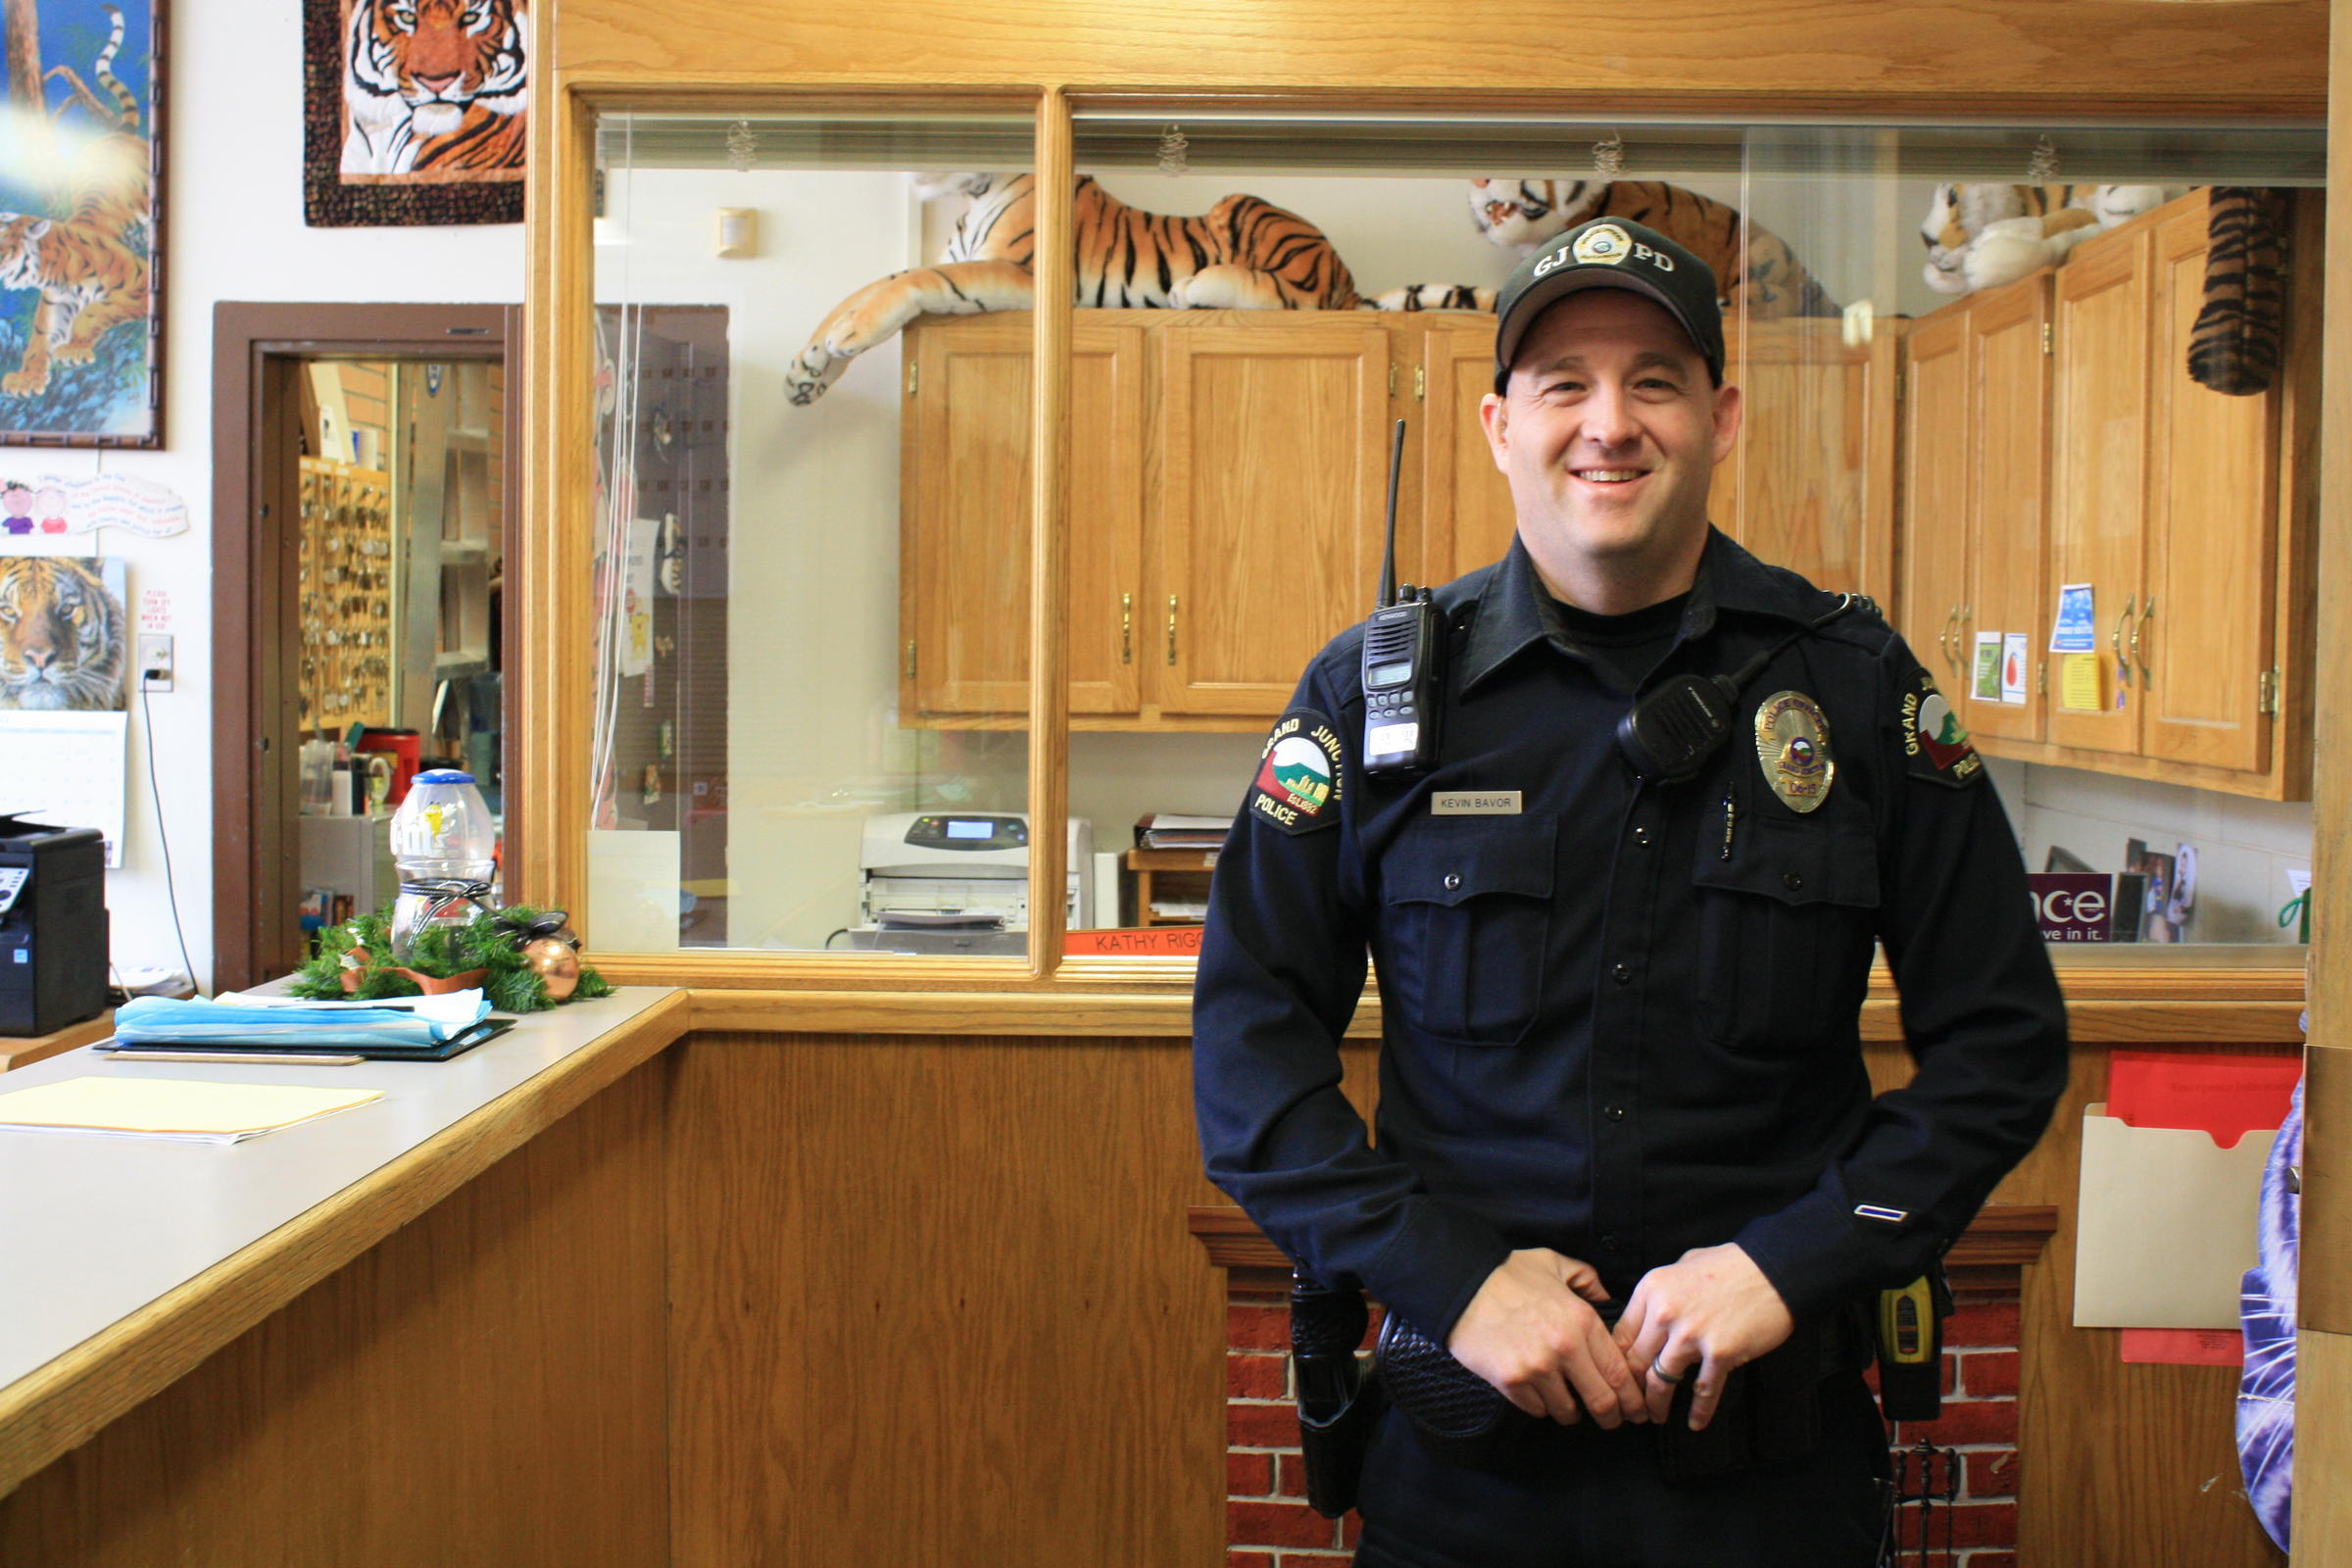 City of Grand Junction - Police Department